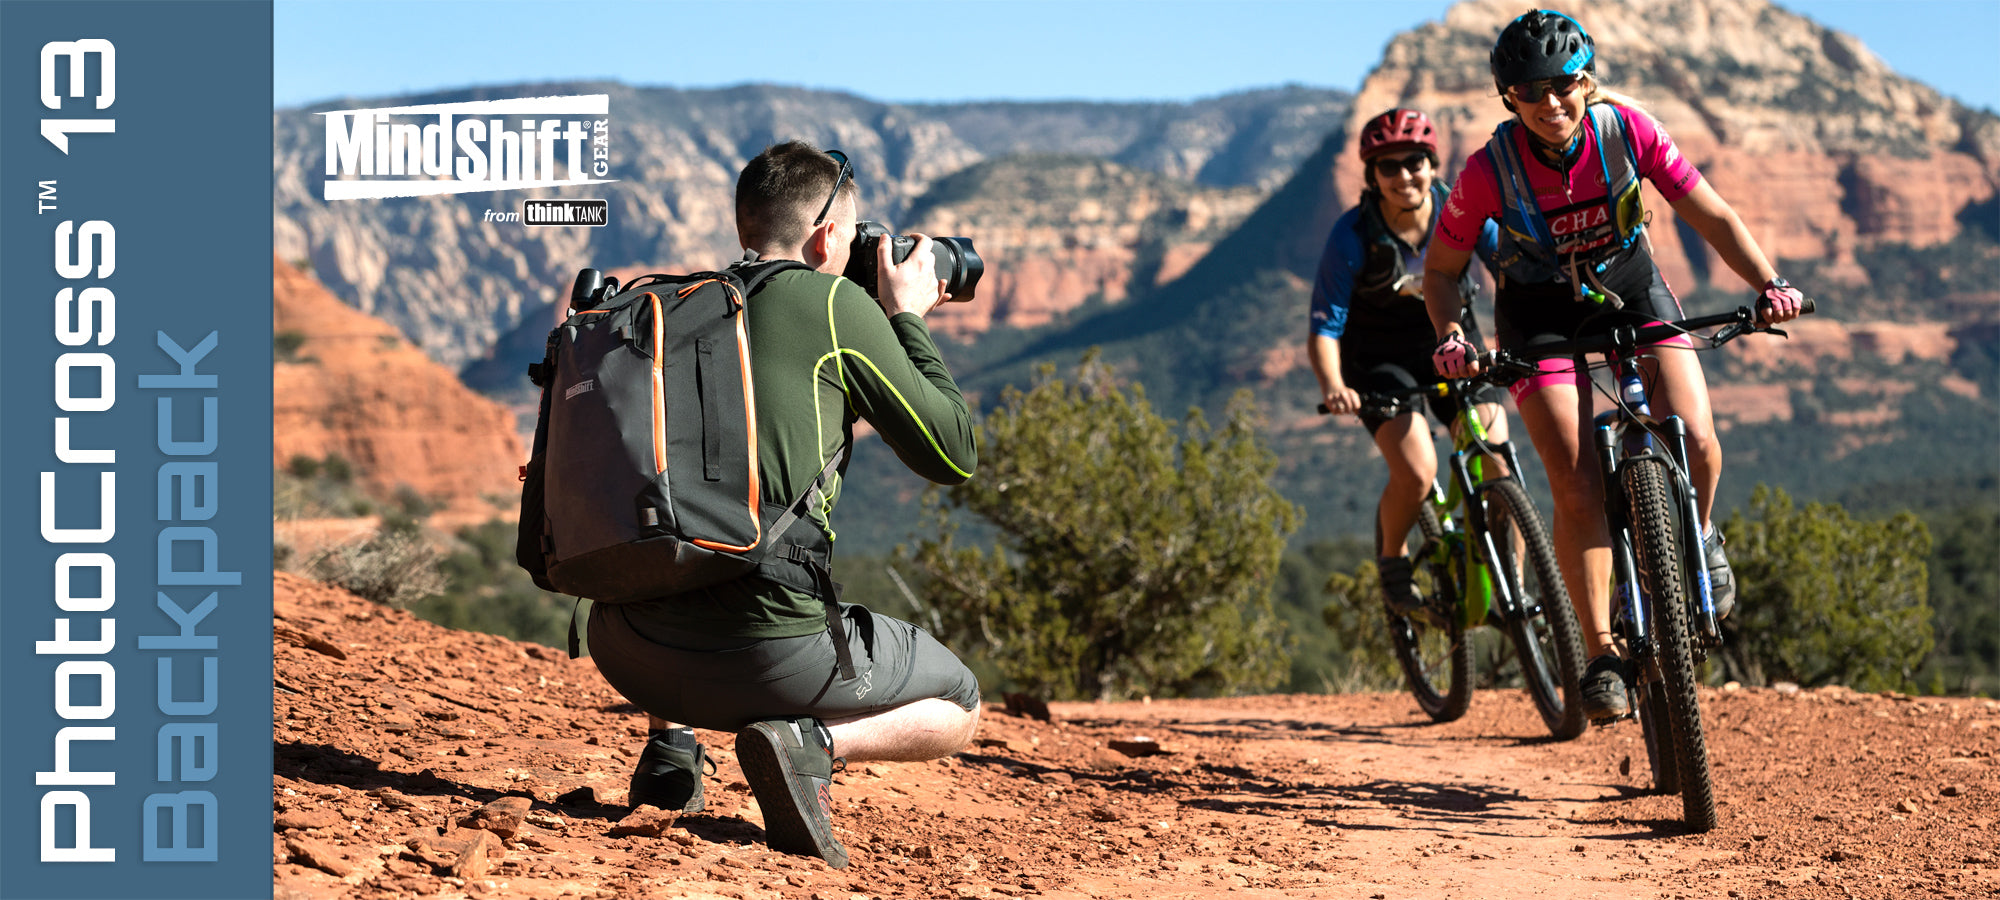 MindShift PhotoCross 13 backpack - Adventure photographers need a camera bag that's as tough as they are.